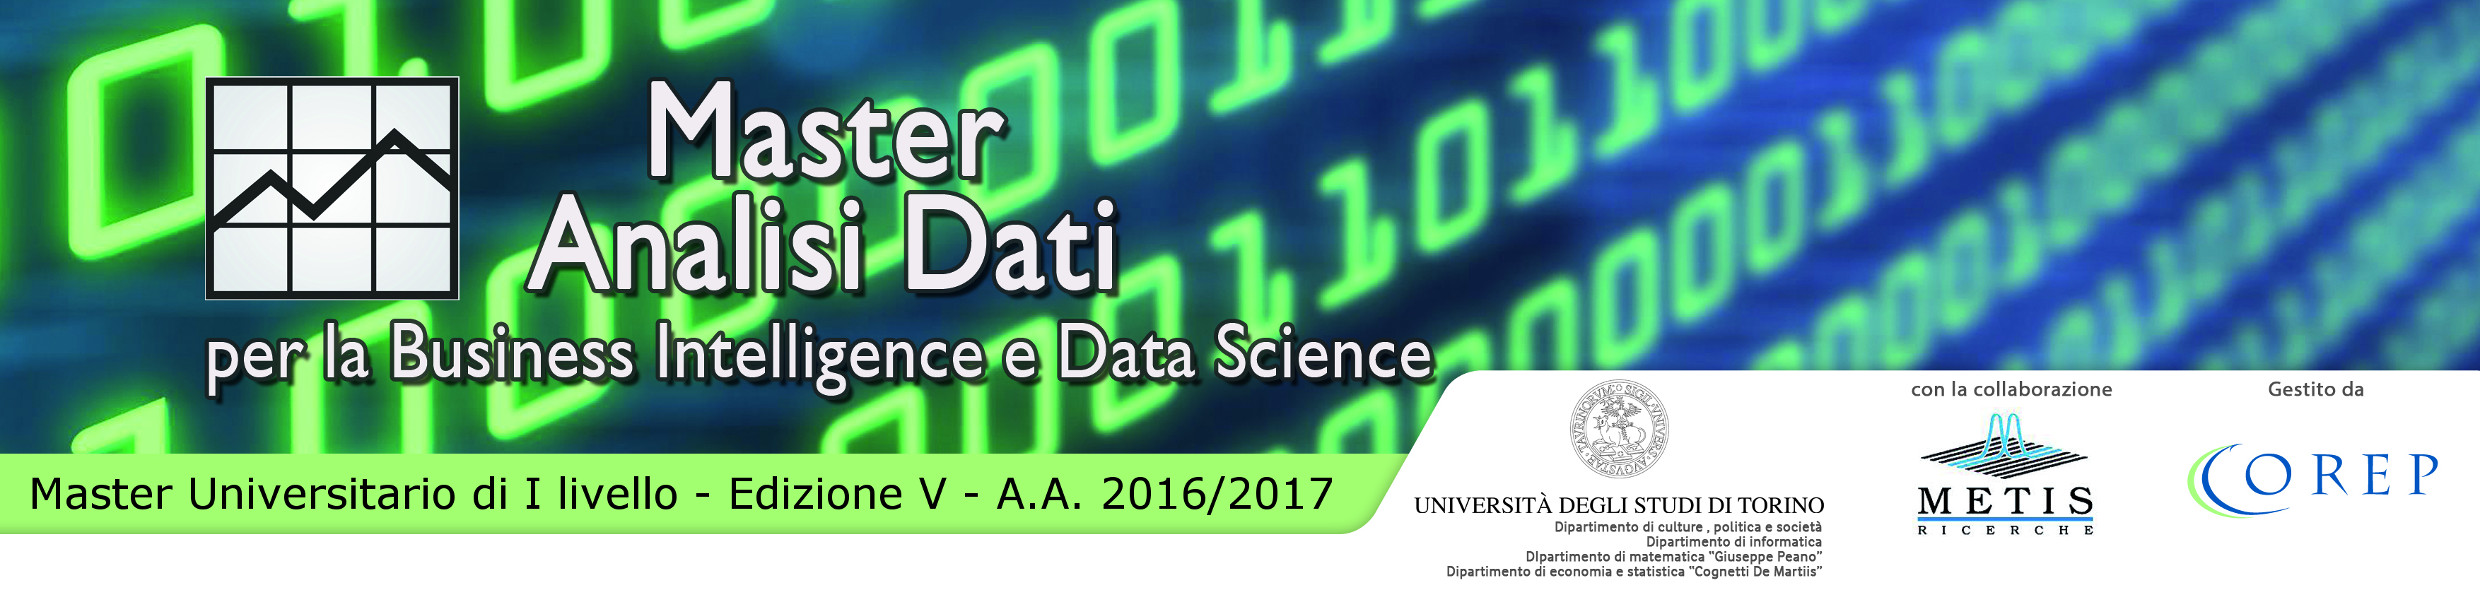 "Bunner Master in ""Analisi dati per la Business Intelligence Data Science"""